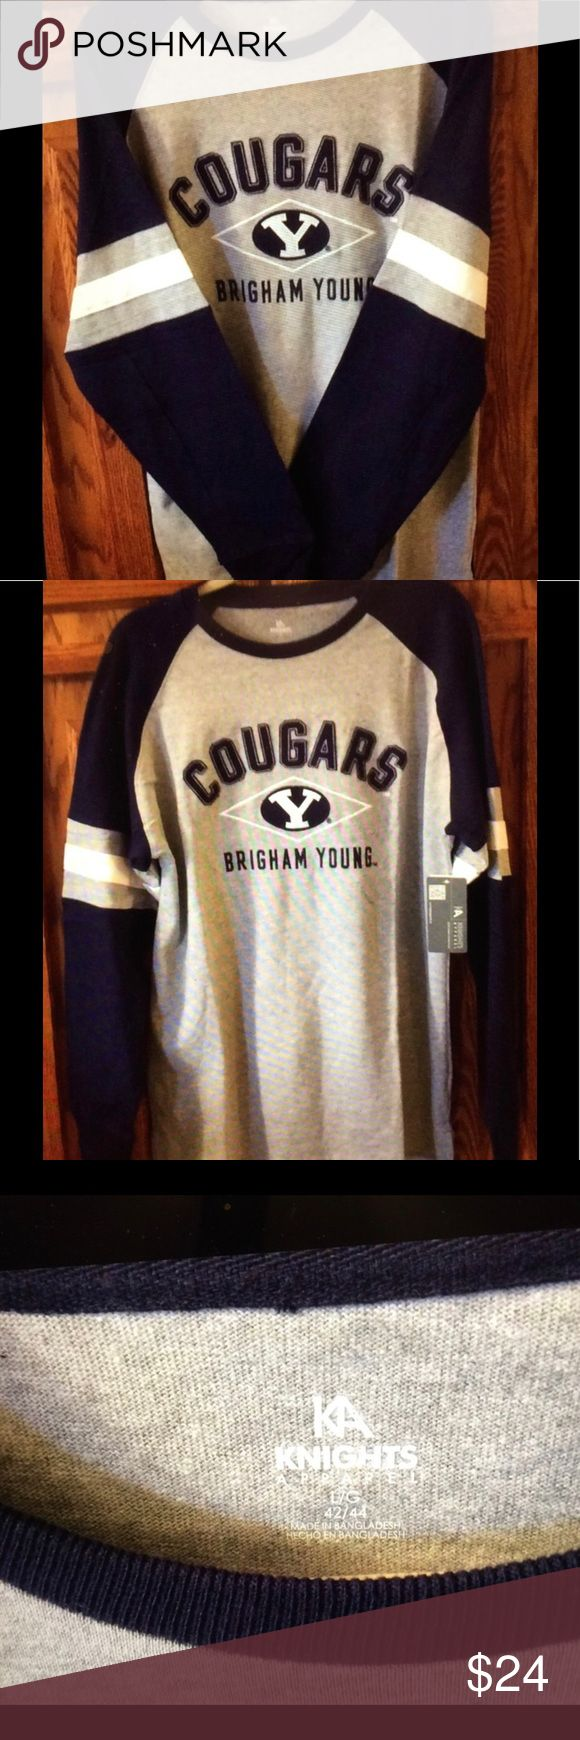 NWT -BYU COUGARS HEAVY DUTY SWEATSHIRT/JERSEY. NWT - HEAVY DUTY BYU COUGARS COLLEGE SWEATSHIRT/JERSEY. Awesome for all the BYU sports fans in your family. GO COUGS!!! 😃 KA Knights Apparel Shirts Sweatshirts & Hoodies